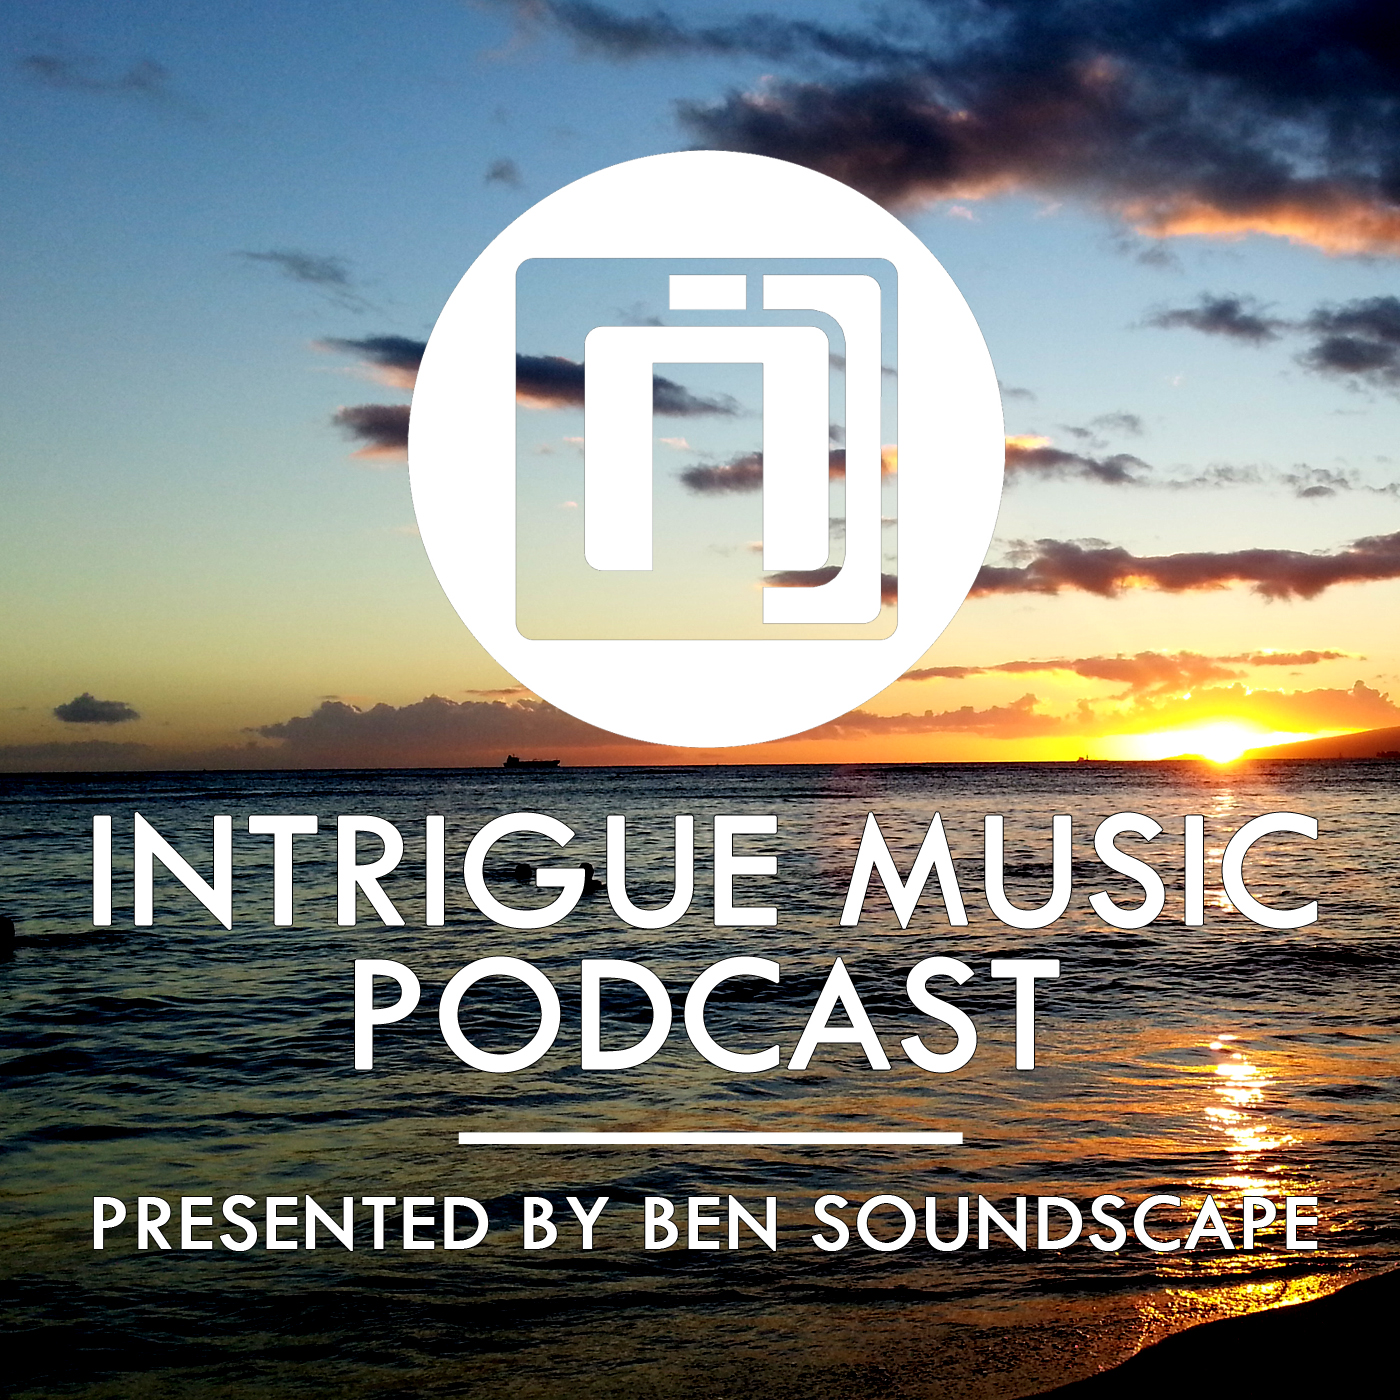 Intrigue Music Podcast